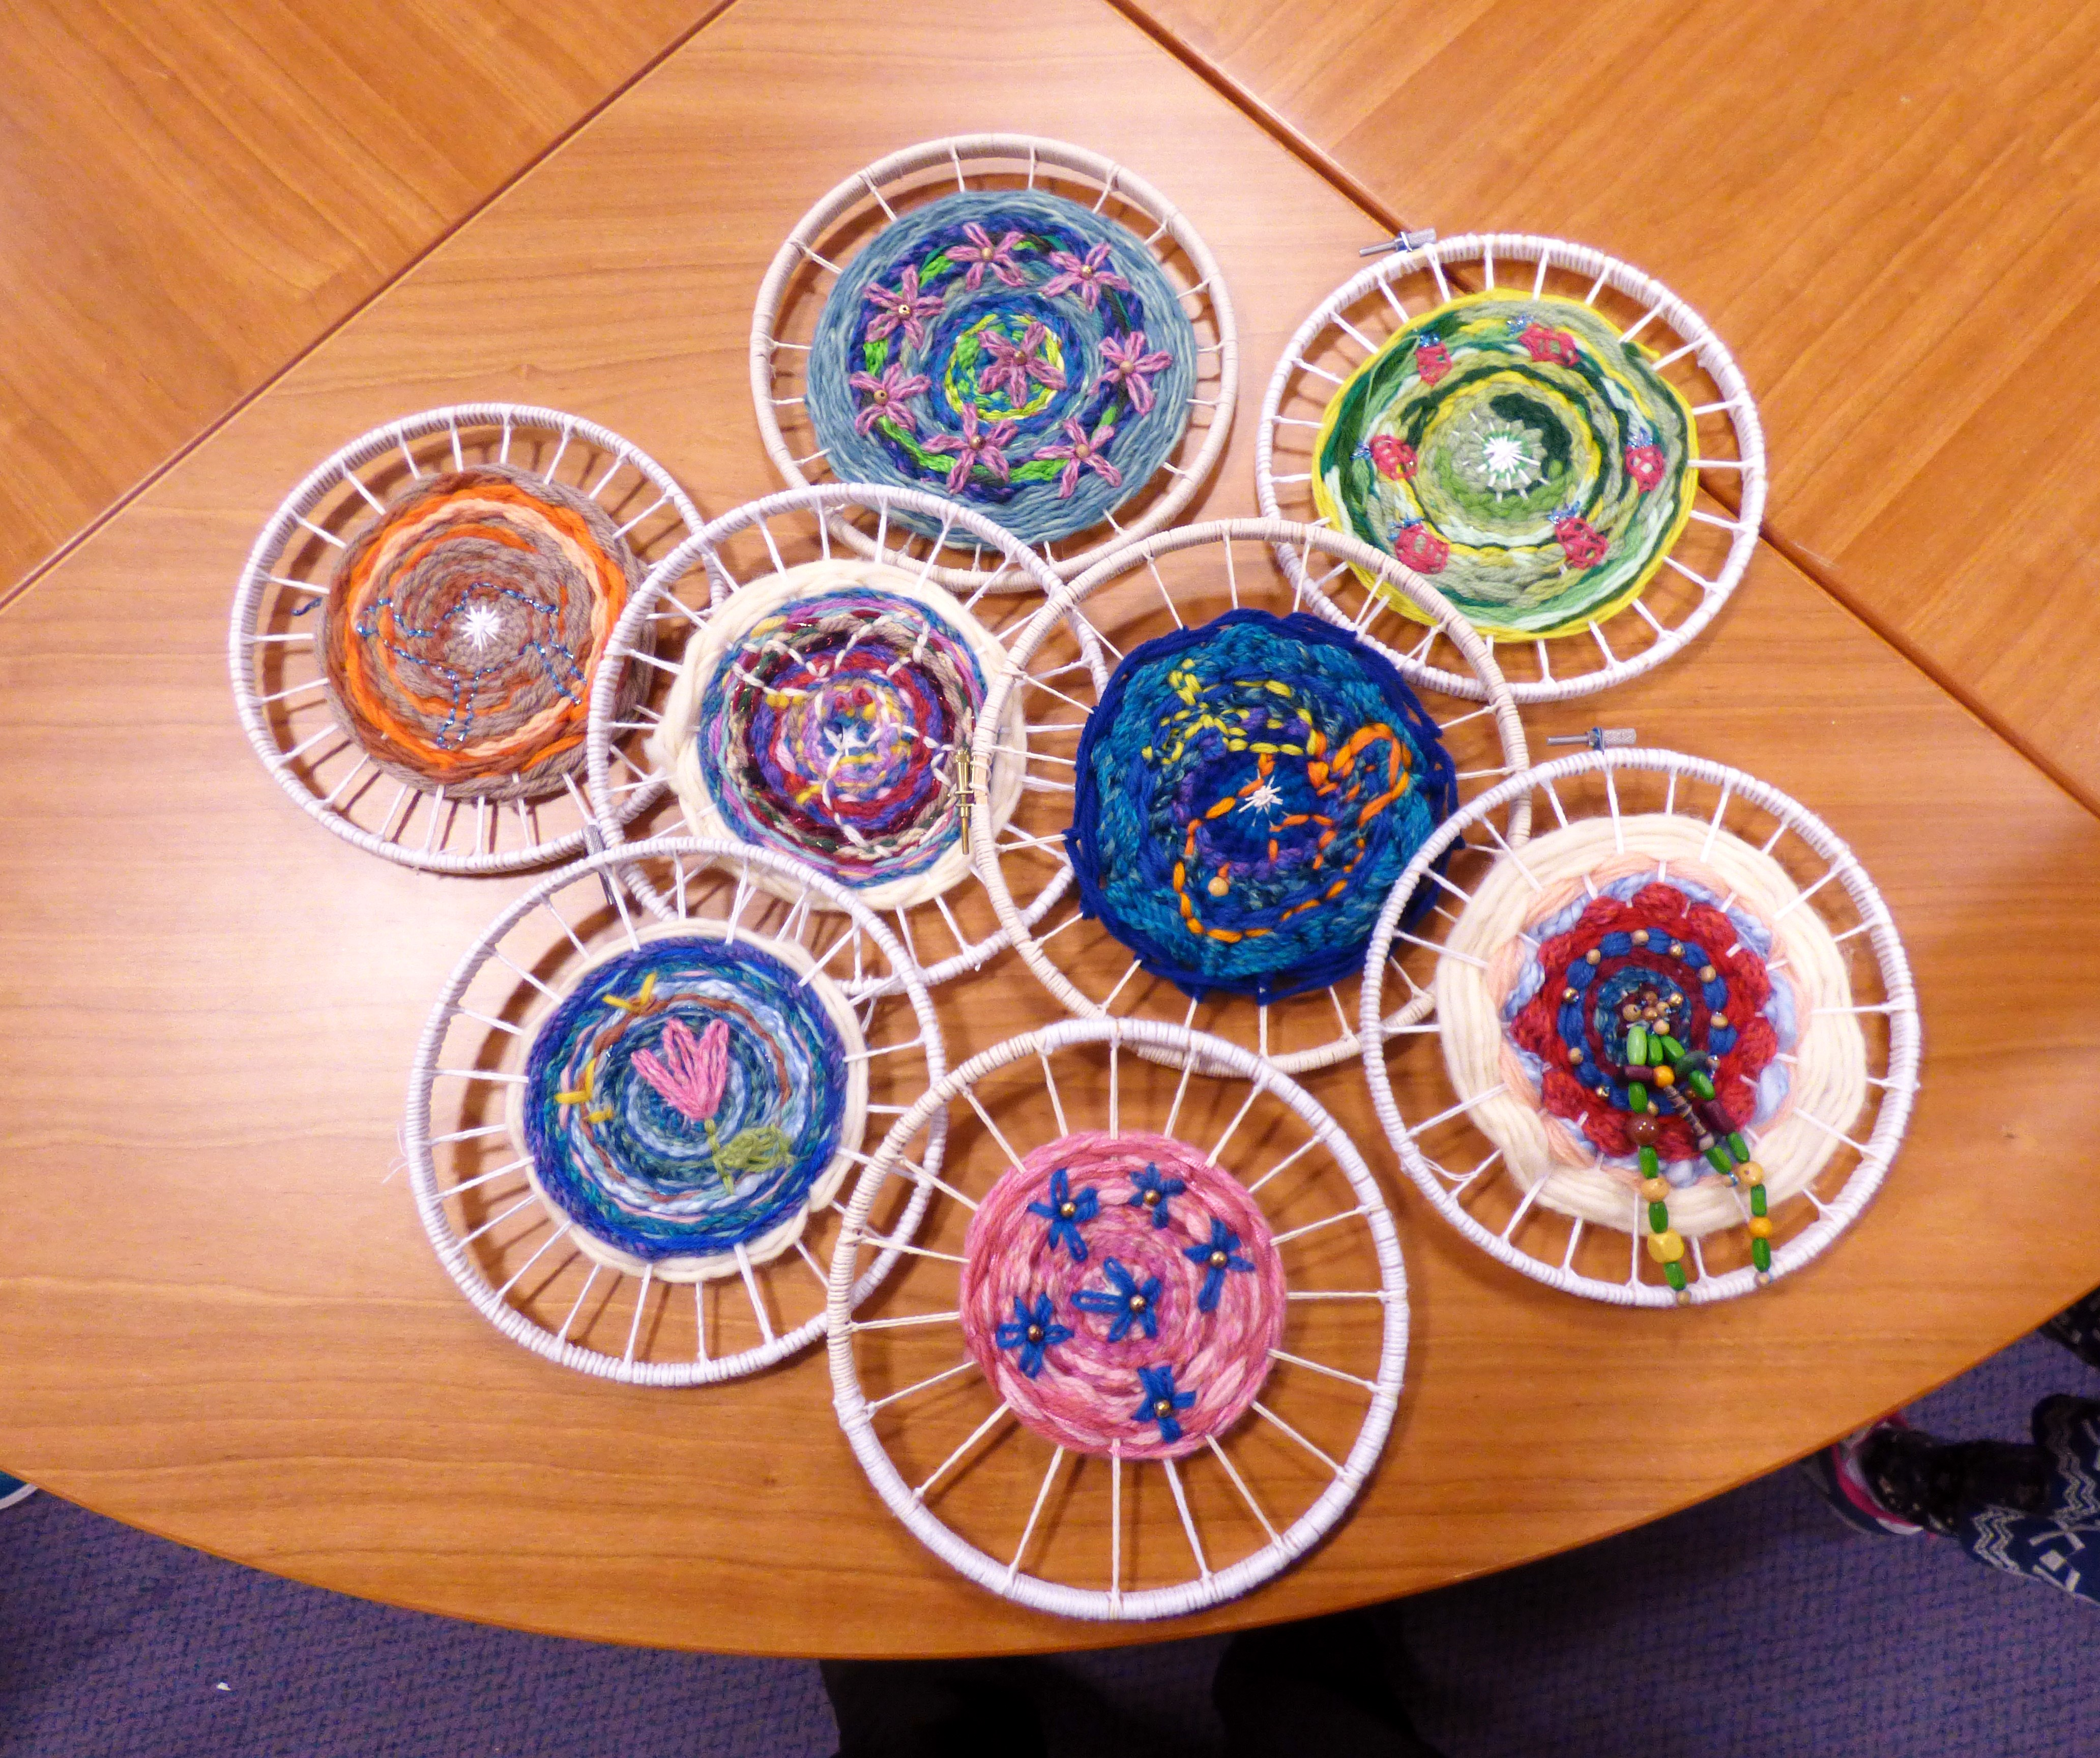 YE group are making a circular weaving with added embroidery